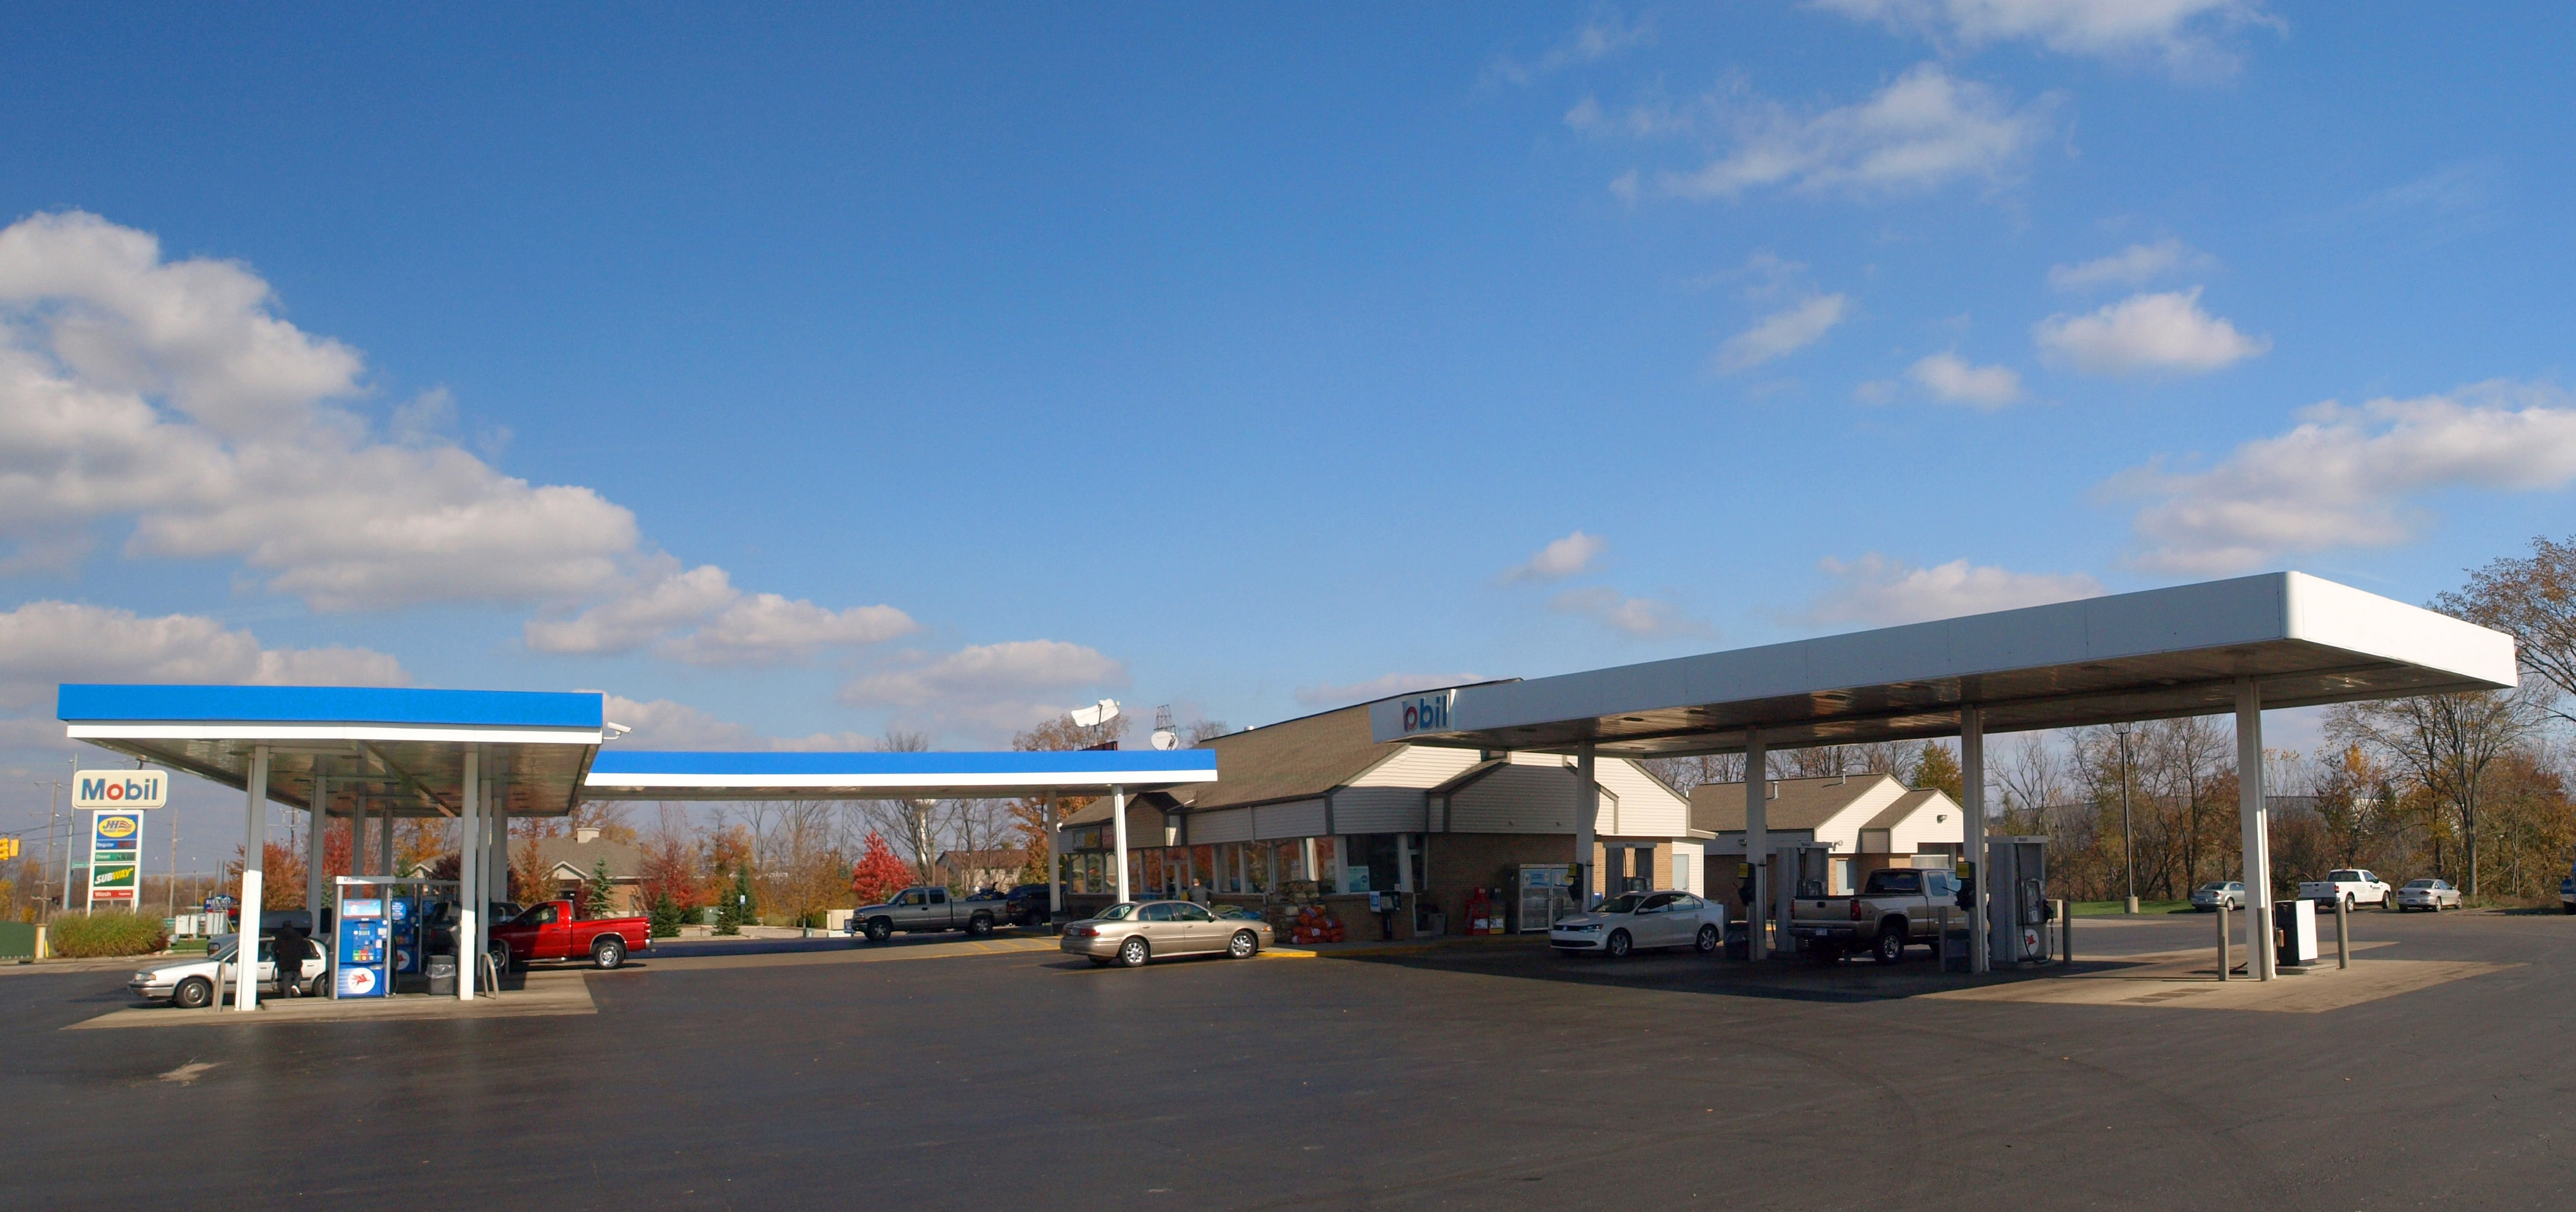 Valley View Mobil